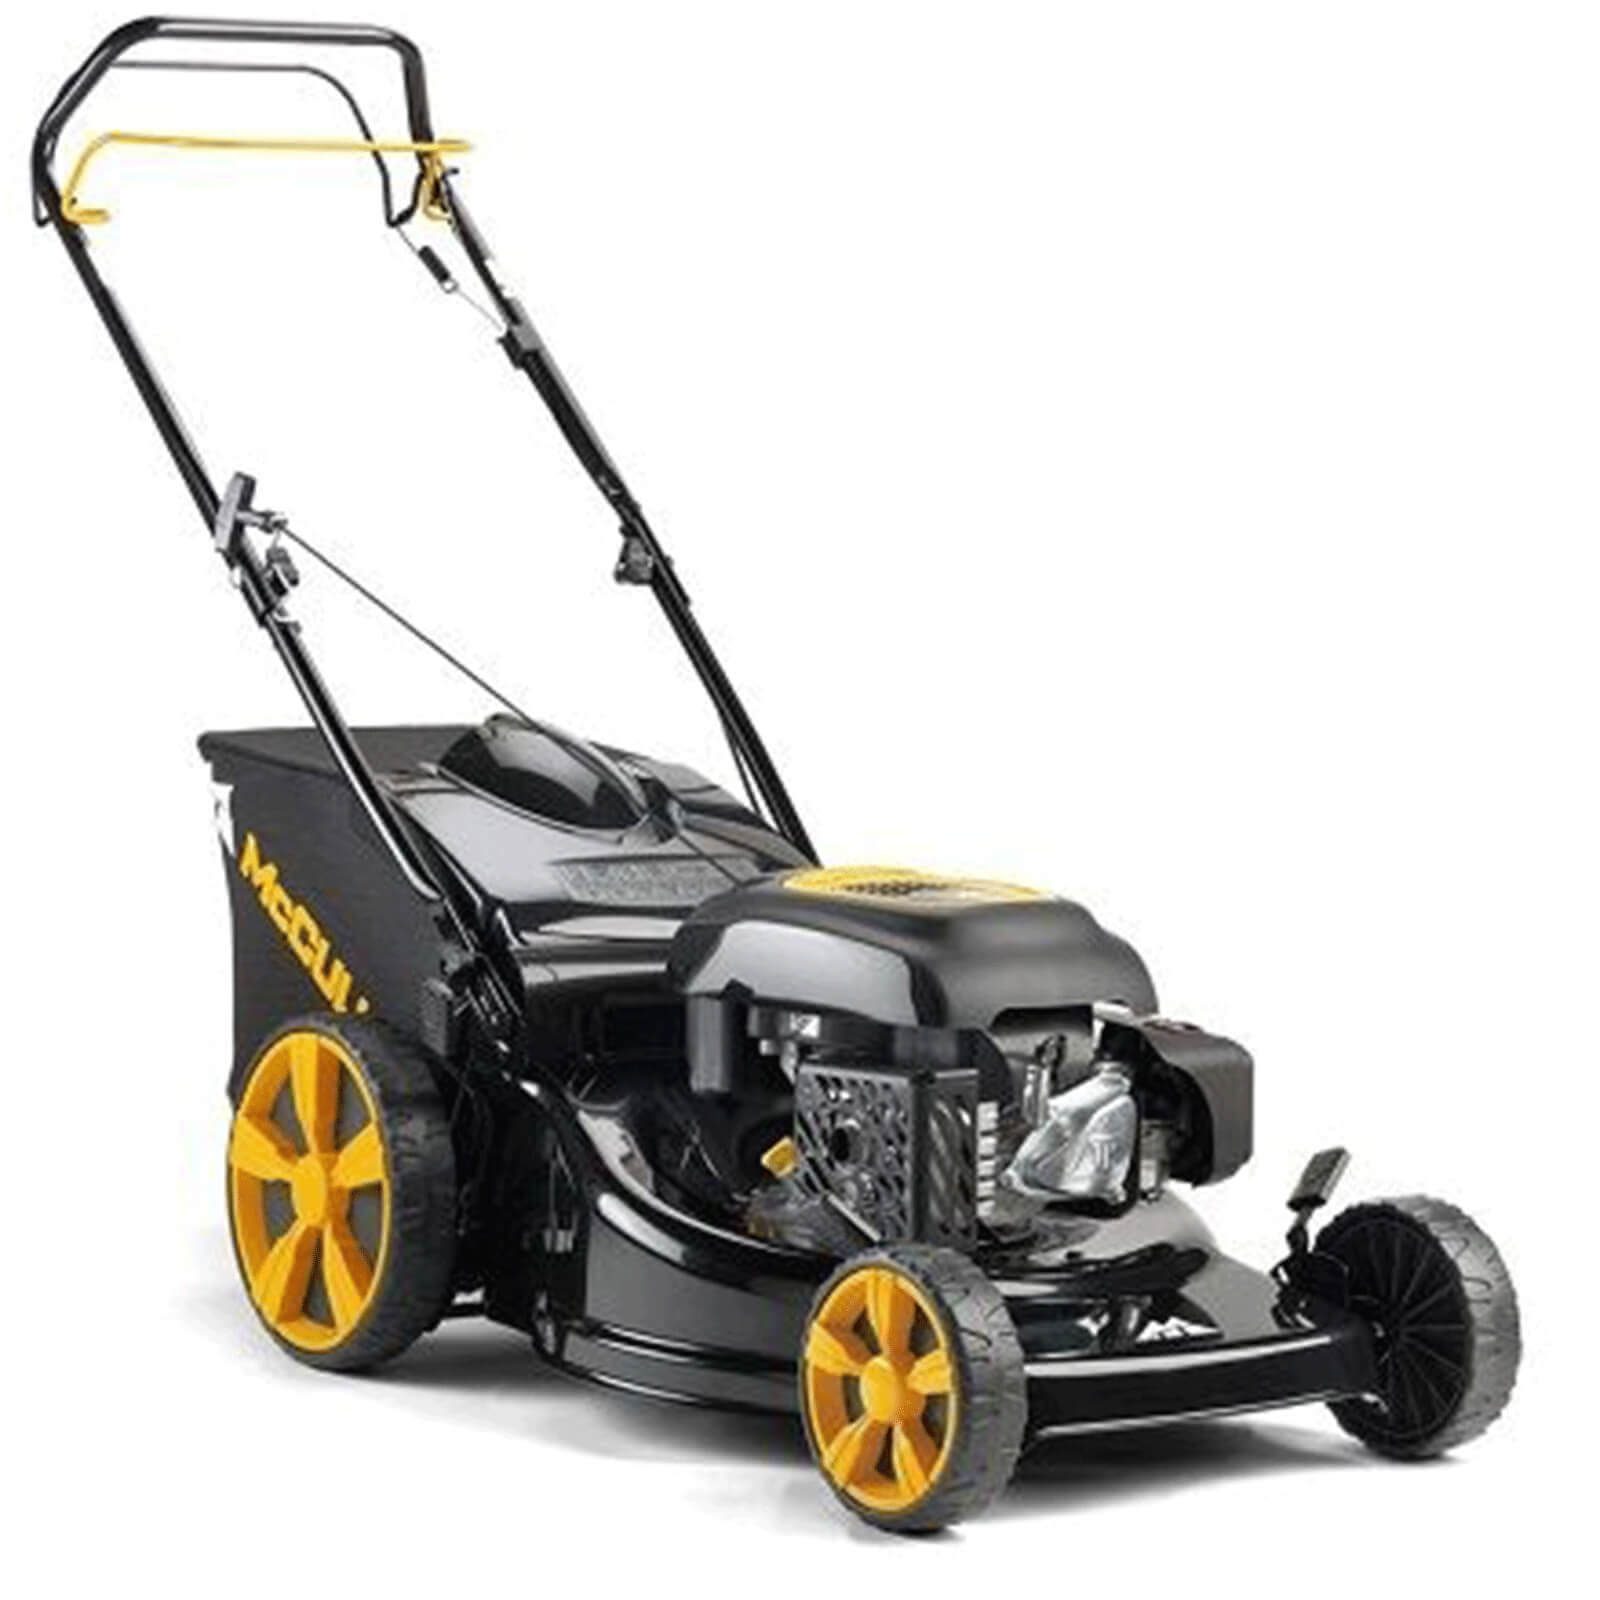 Image of McCulloch M51-150WR Self Propelled Petrol Rotary Lawnmower 510mm